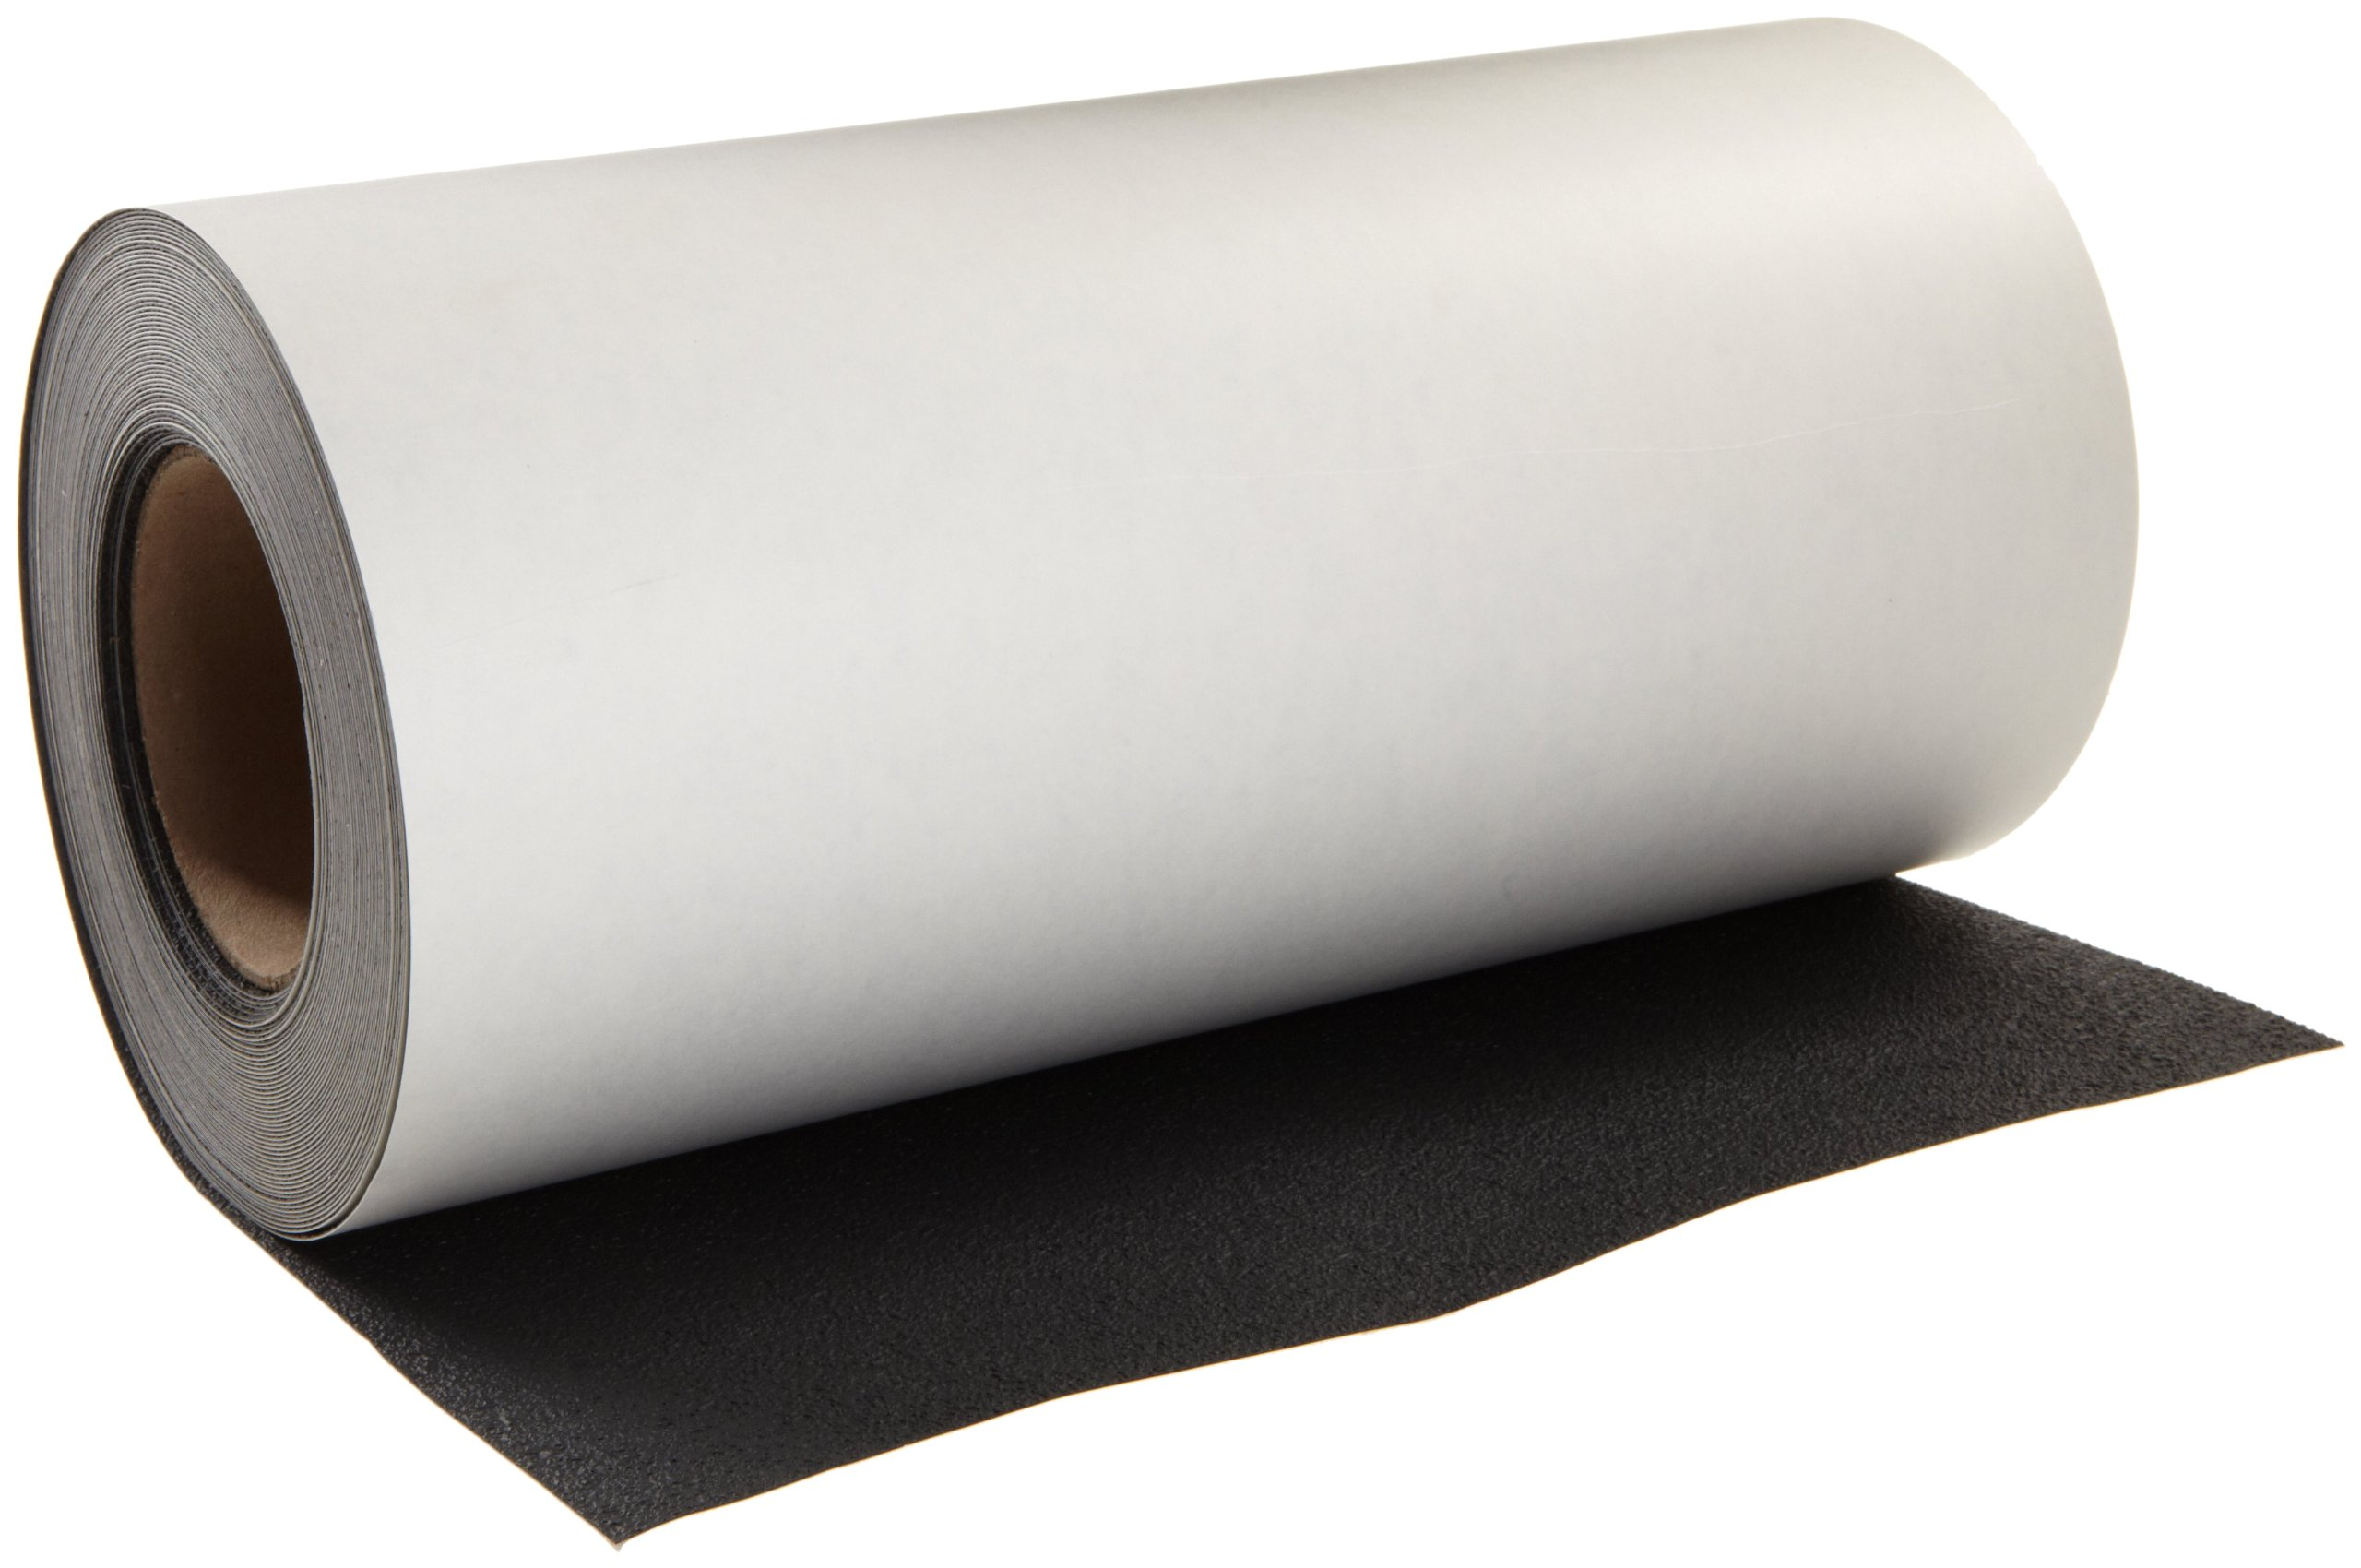 Jessup Safety Track 3510 Resilient Non-Slip Safety Tape (Black, 12-Inch x 60-Foot Roll)